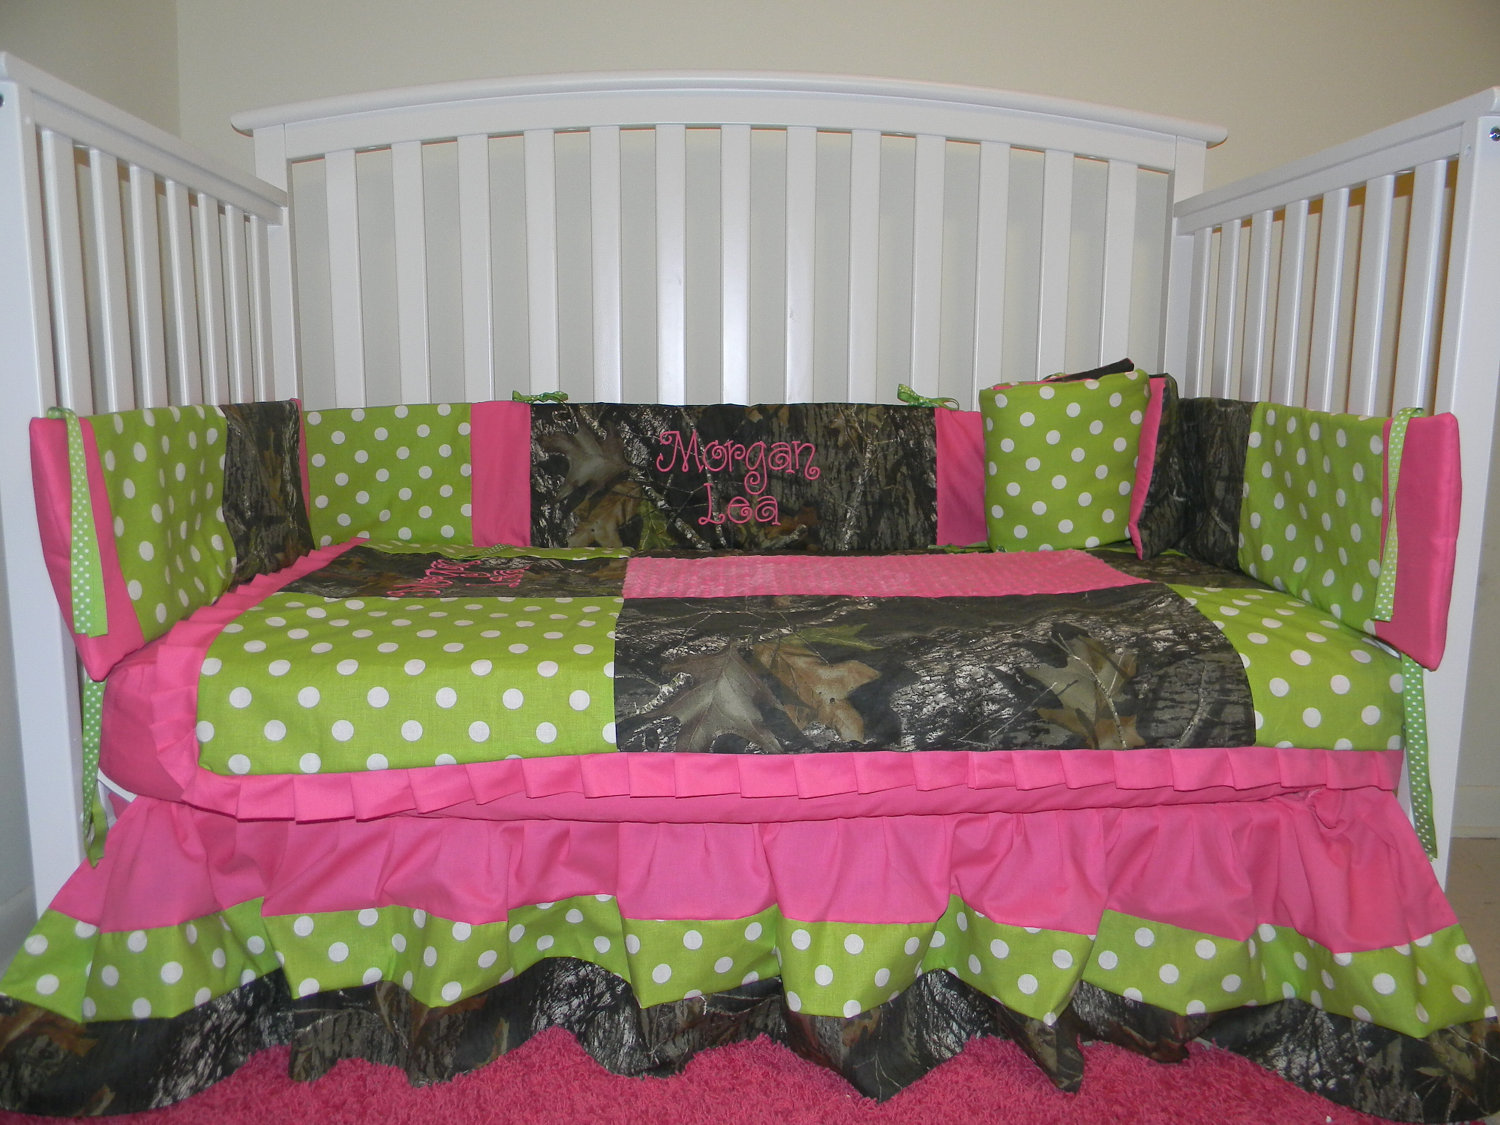 Picture of: Girl Nursery Bedding real